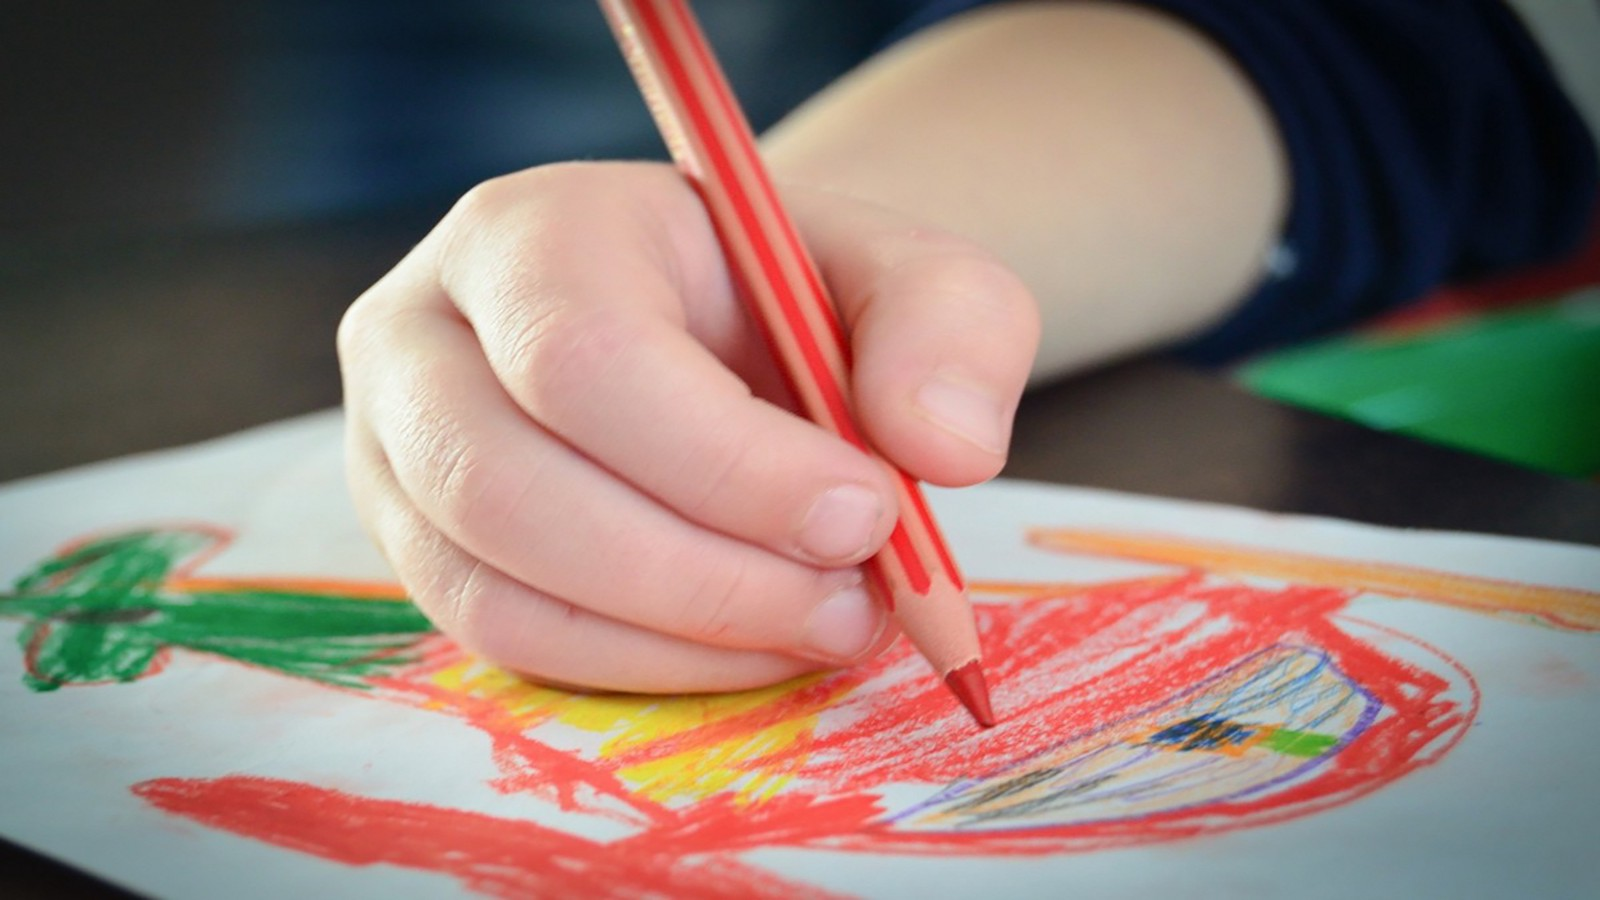 How artificial intelligence can detect emotions in childrens drawings